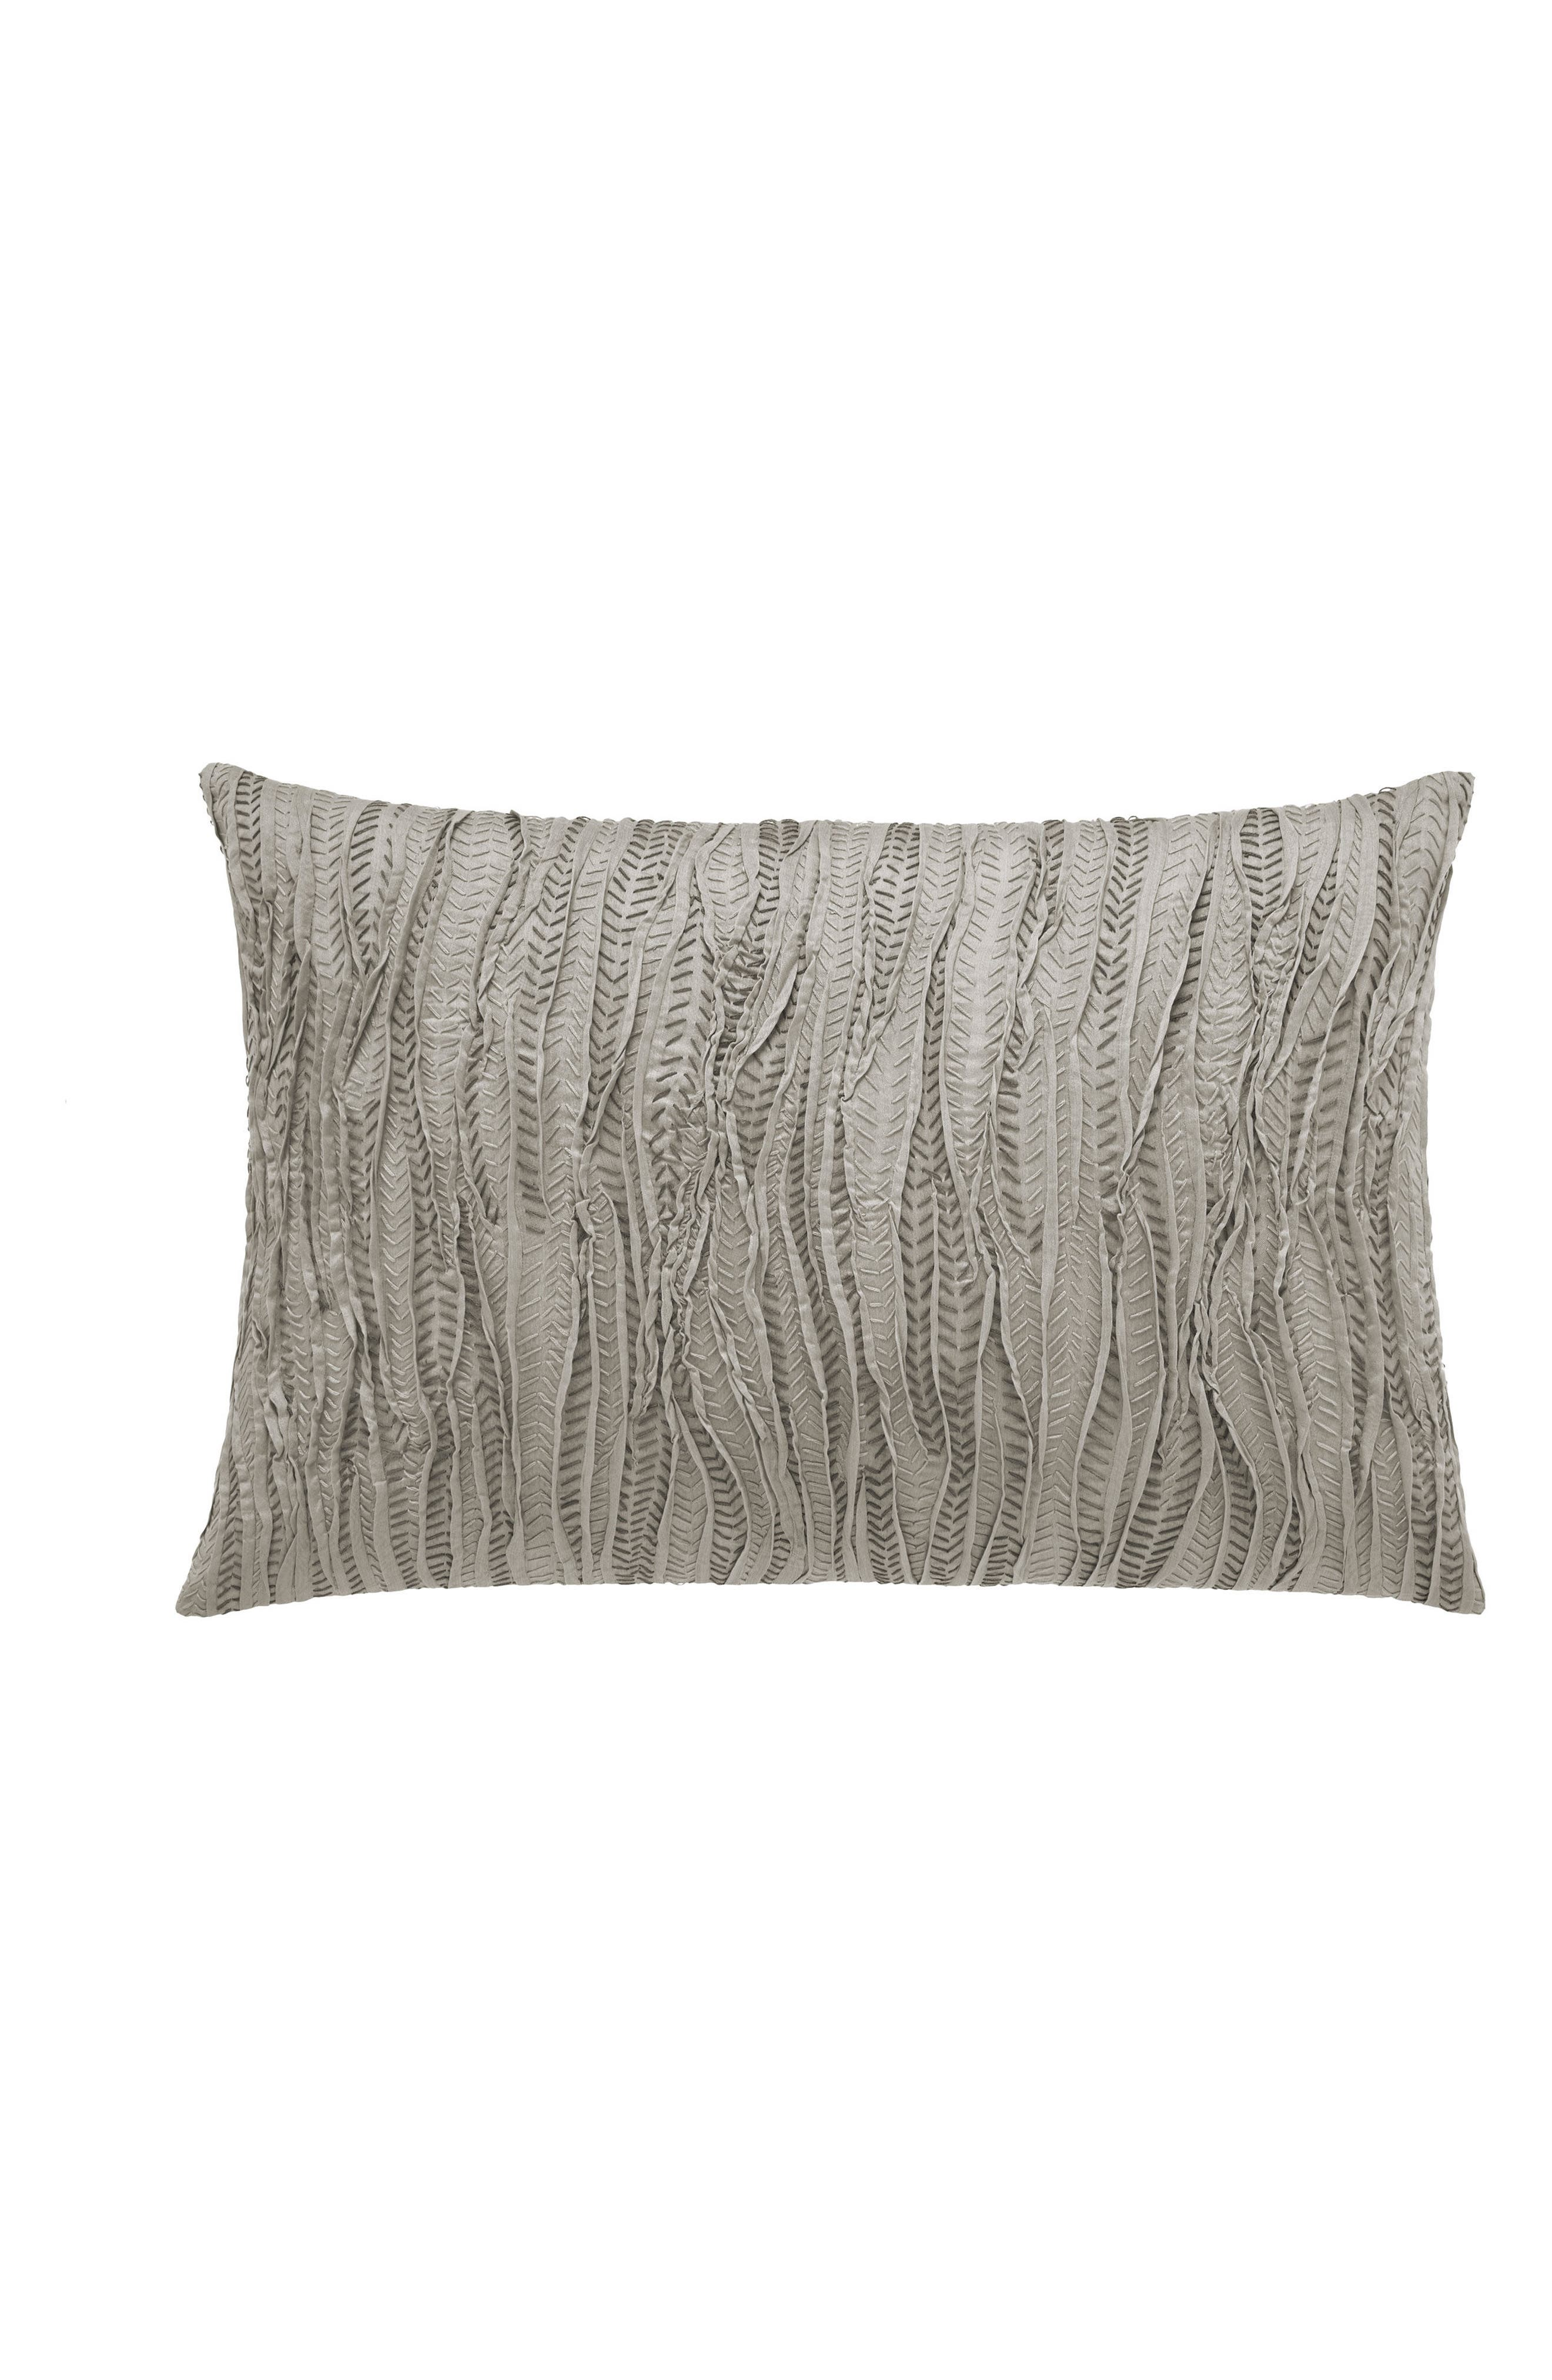 Lux Marble Shibori Breakfast Accent Pillow,                             Main thumbnail 2, color,